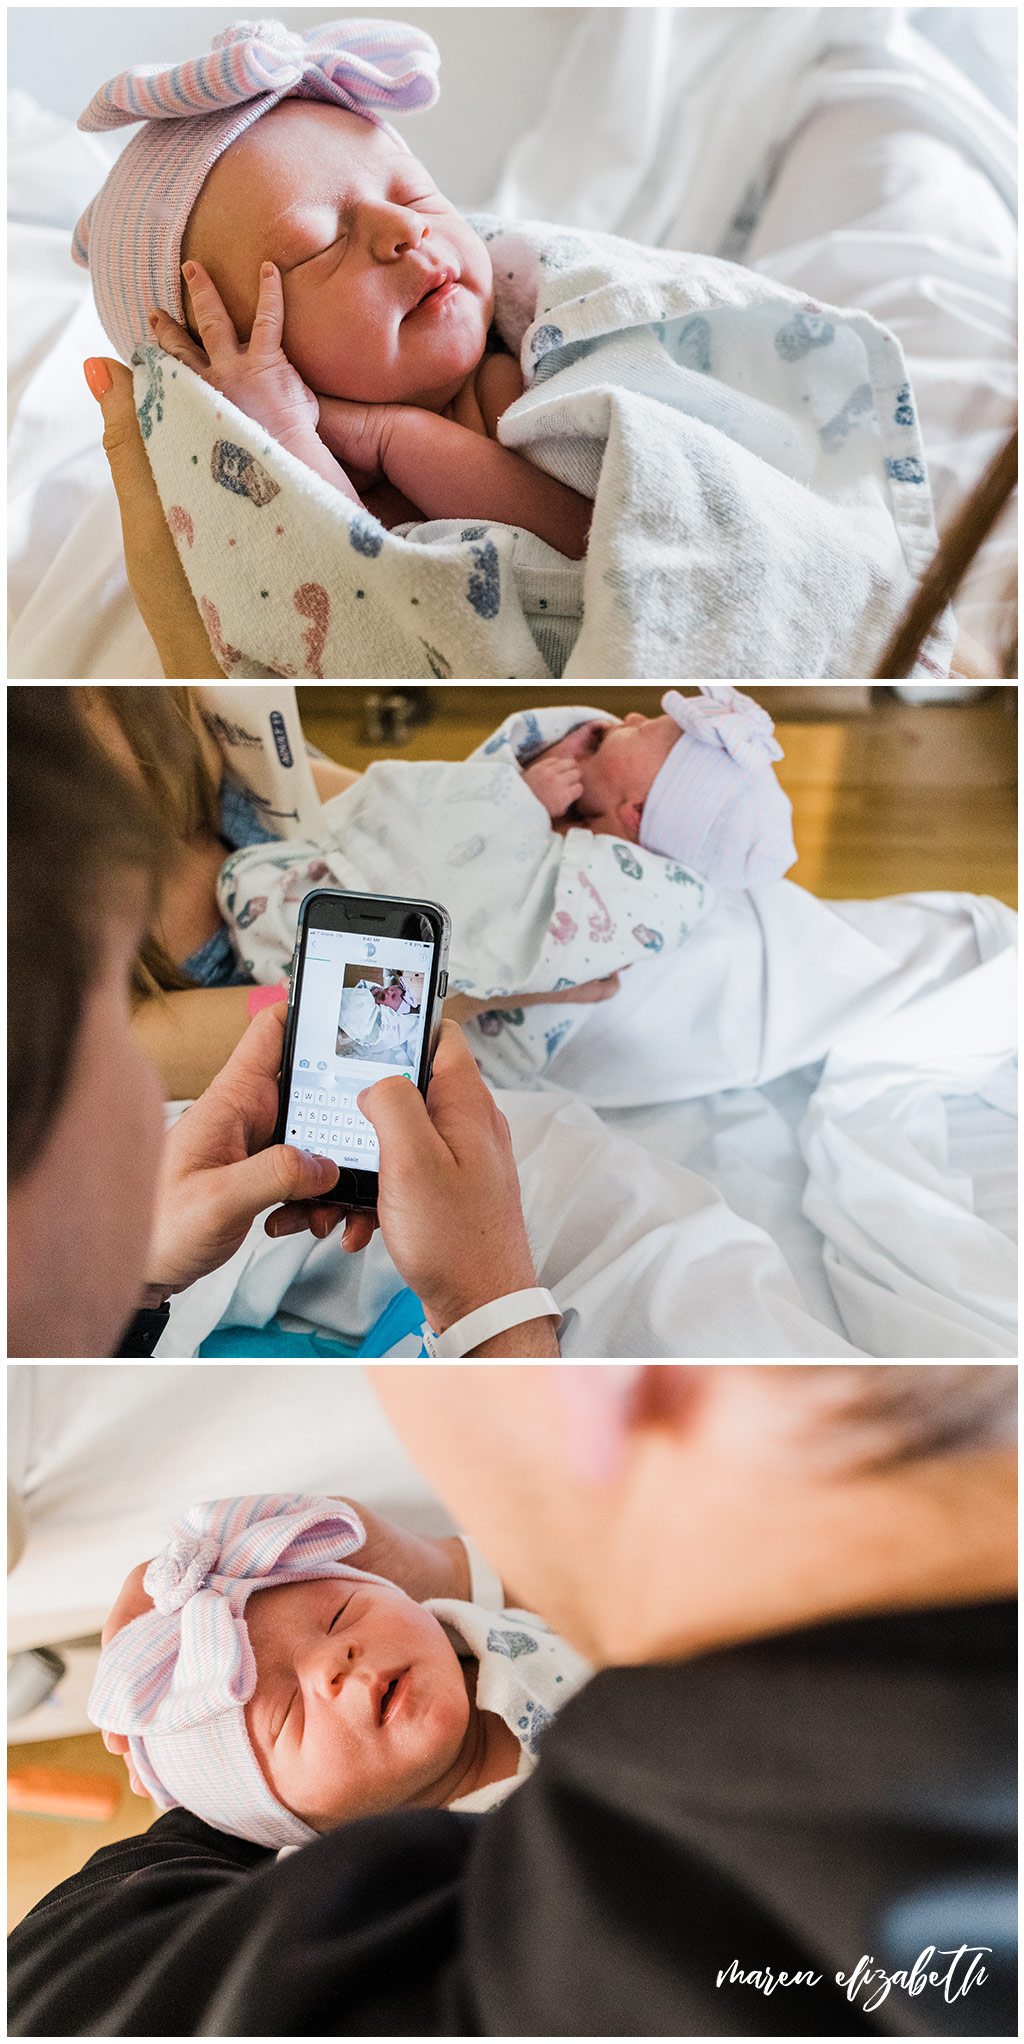 Fresh 48 Pictures at American Fork Hospital in Utah minutes after Baby M's birth. Maren Elizabeth Photography | Arizona Photographer.